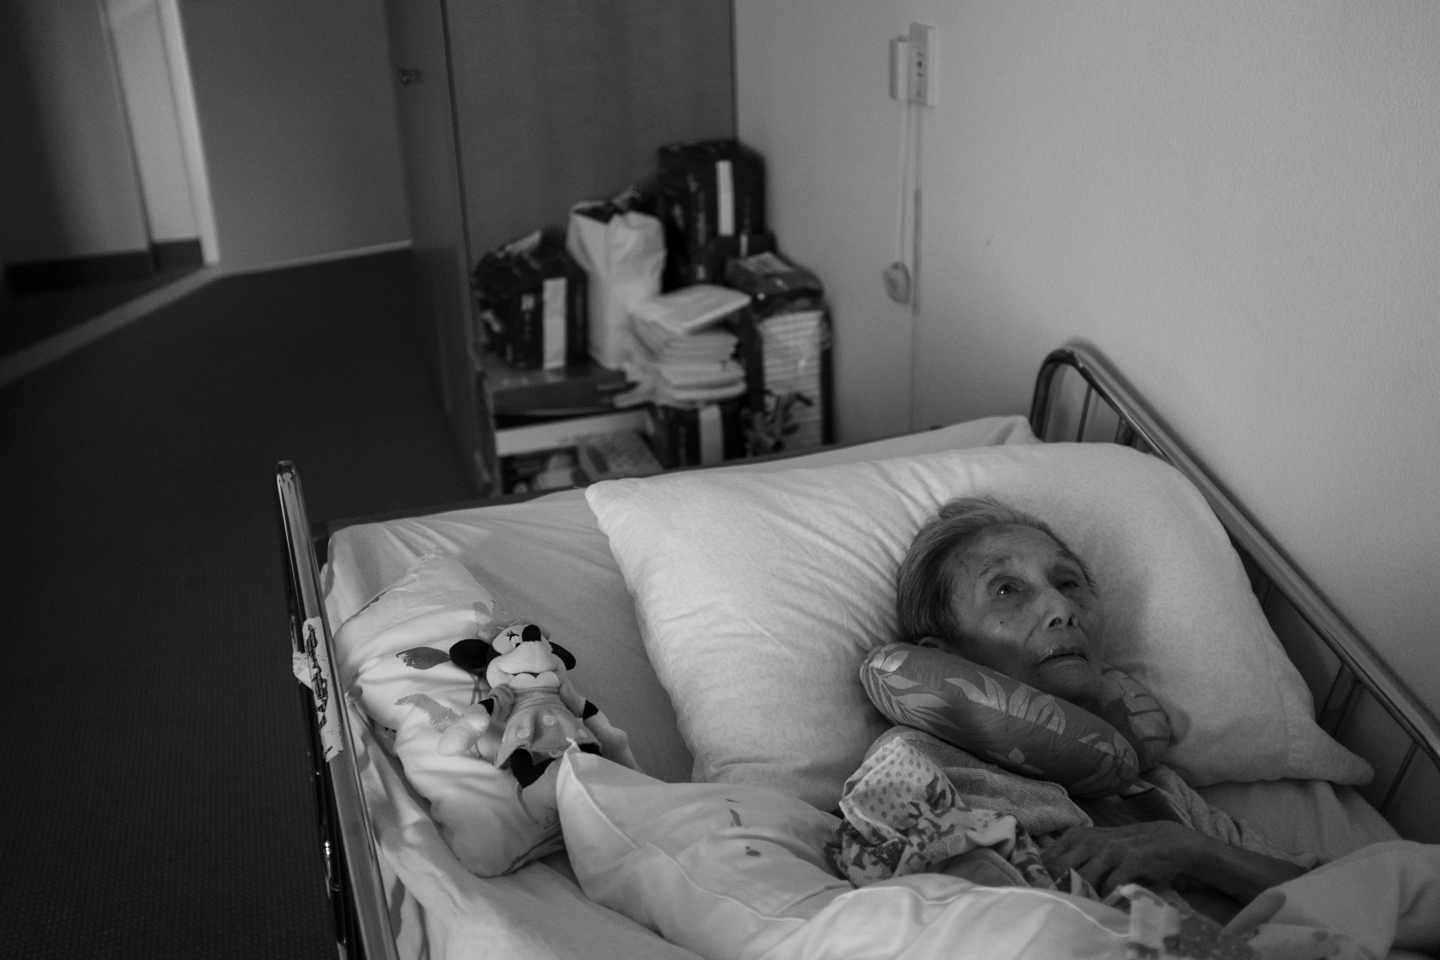 On September 29, 2015, I visited popo in her room at Kahala Nui's Hi'olani Care Center. She was mostly unresponsive and unable to speak. Every once in a while she would open her eyes to look in my direction. Struggling to speak, she'd let out a long sigh and would return to sleep next to a Minnie Mouse doll that my niece, Emma Yamada, gave to her as a gift.